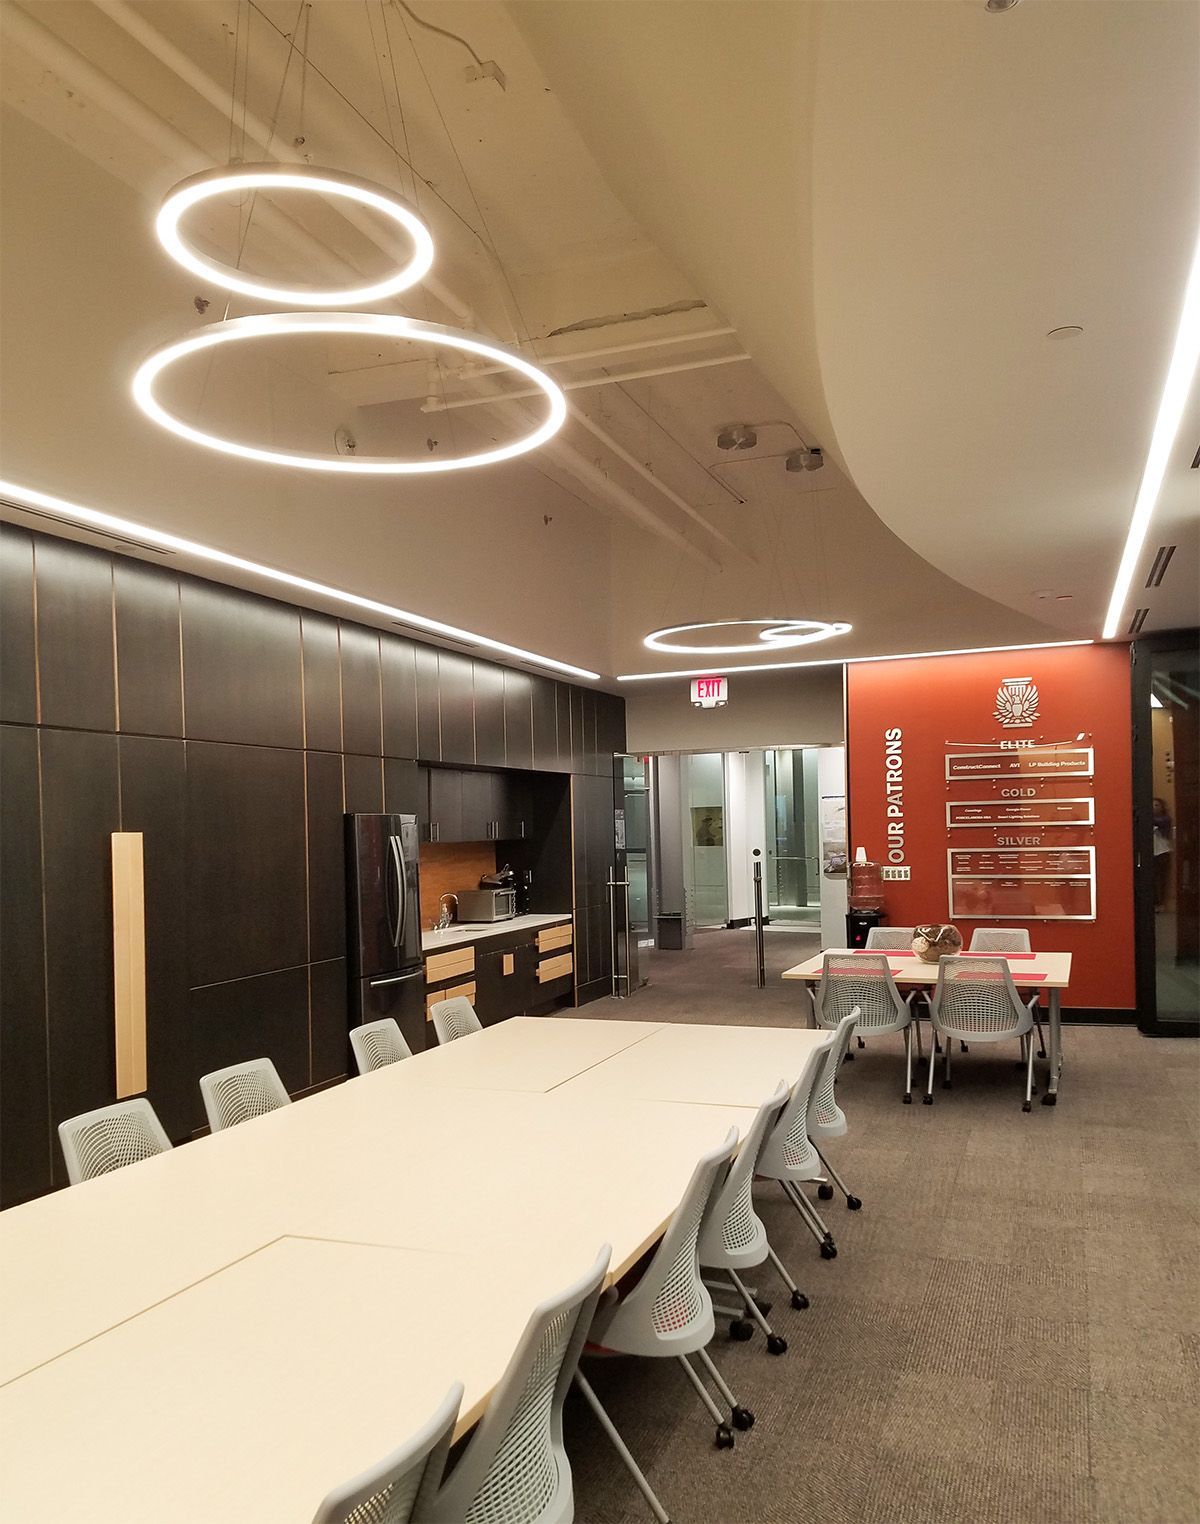 Conference Room Lighting Design: Zynn Rings By SPI Lighting. Courtesy Of AIA Atlanta